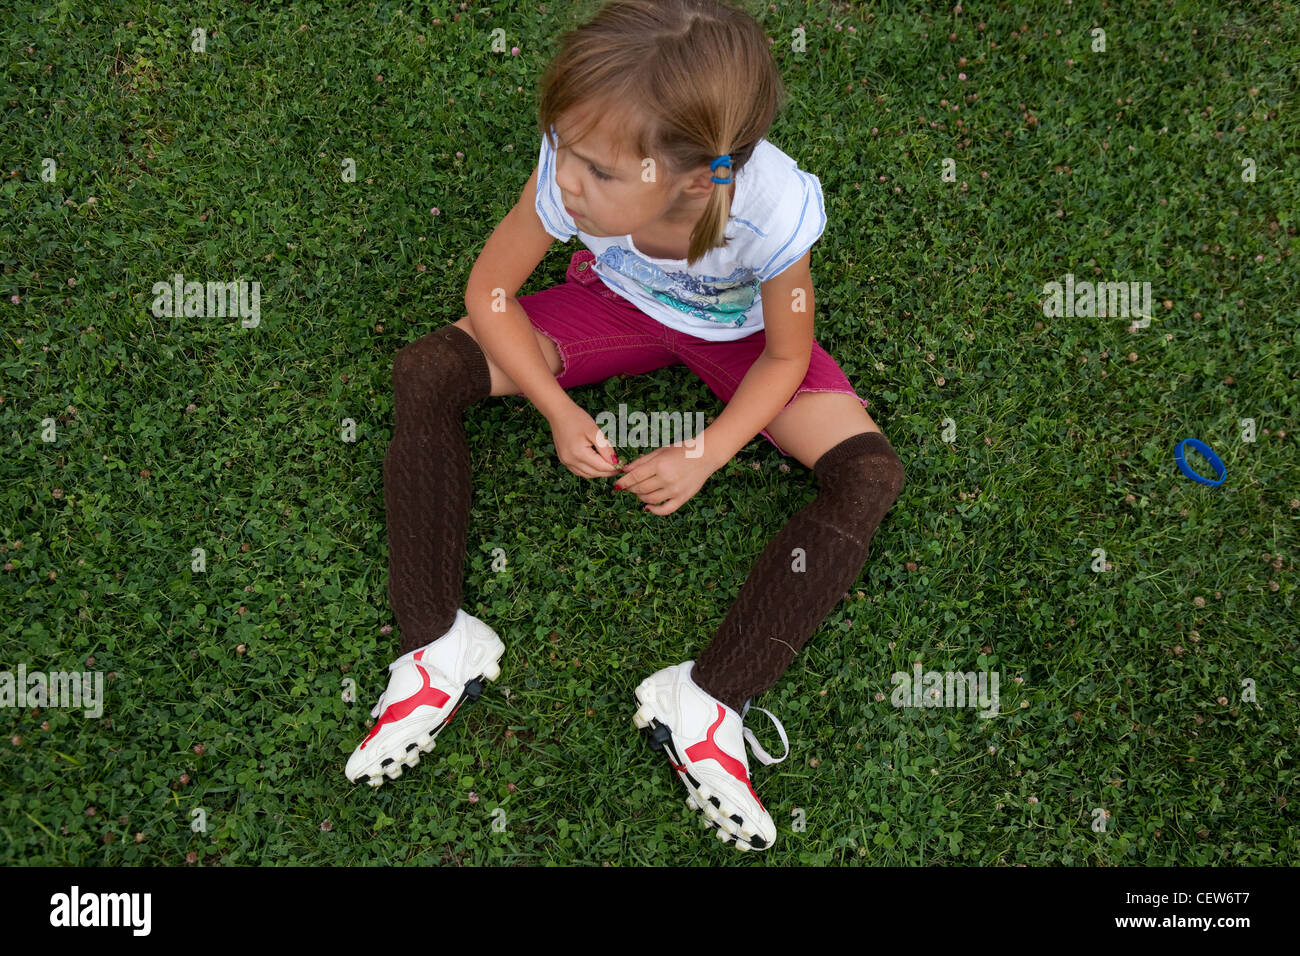 Six year old girl sitting in grass wearing soccer cleat and shin guards. 0dcbf738947a